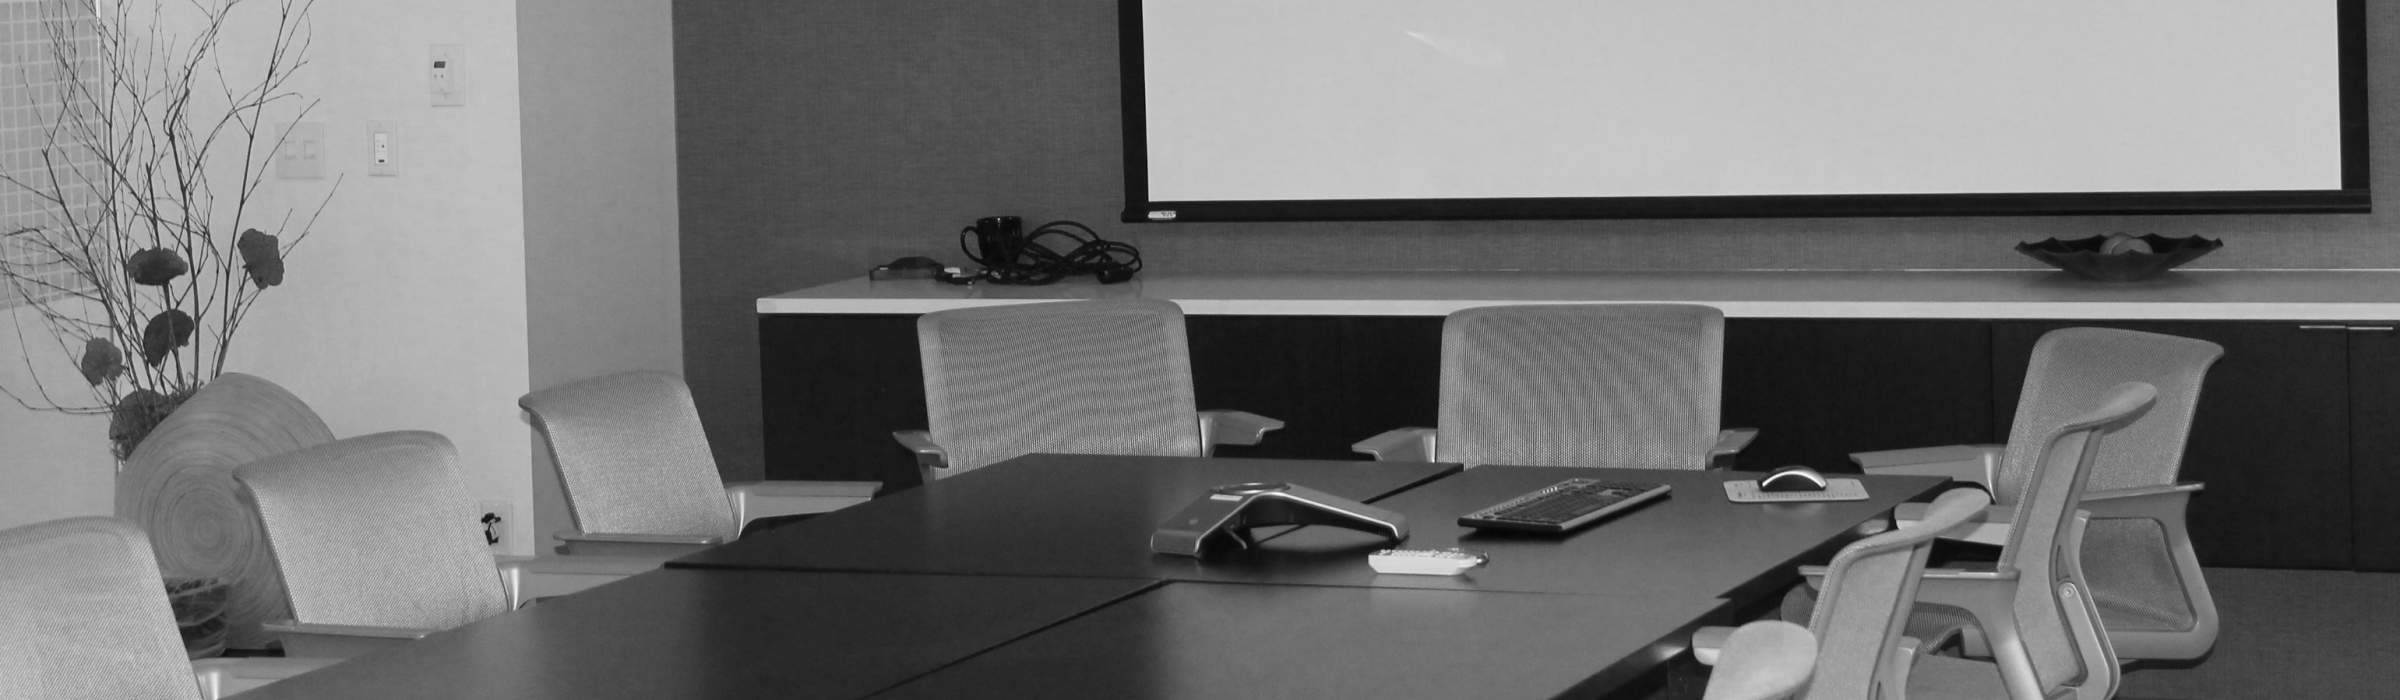 Empty conference table